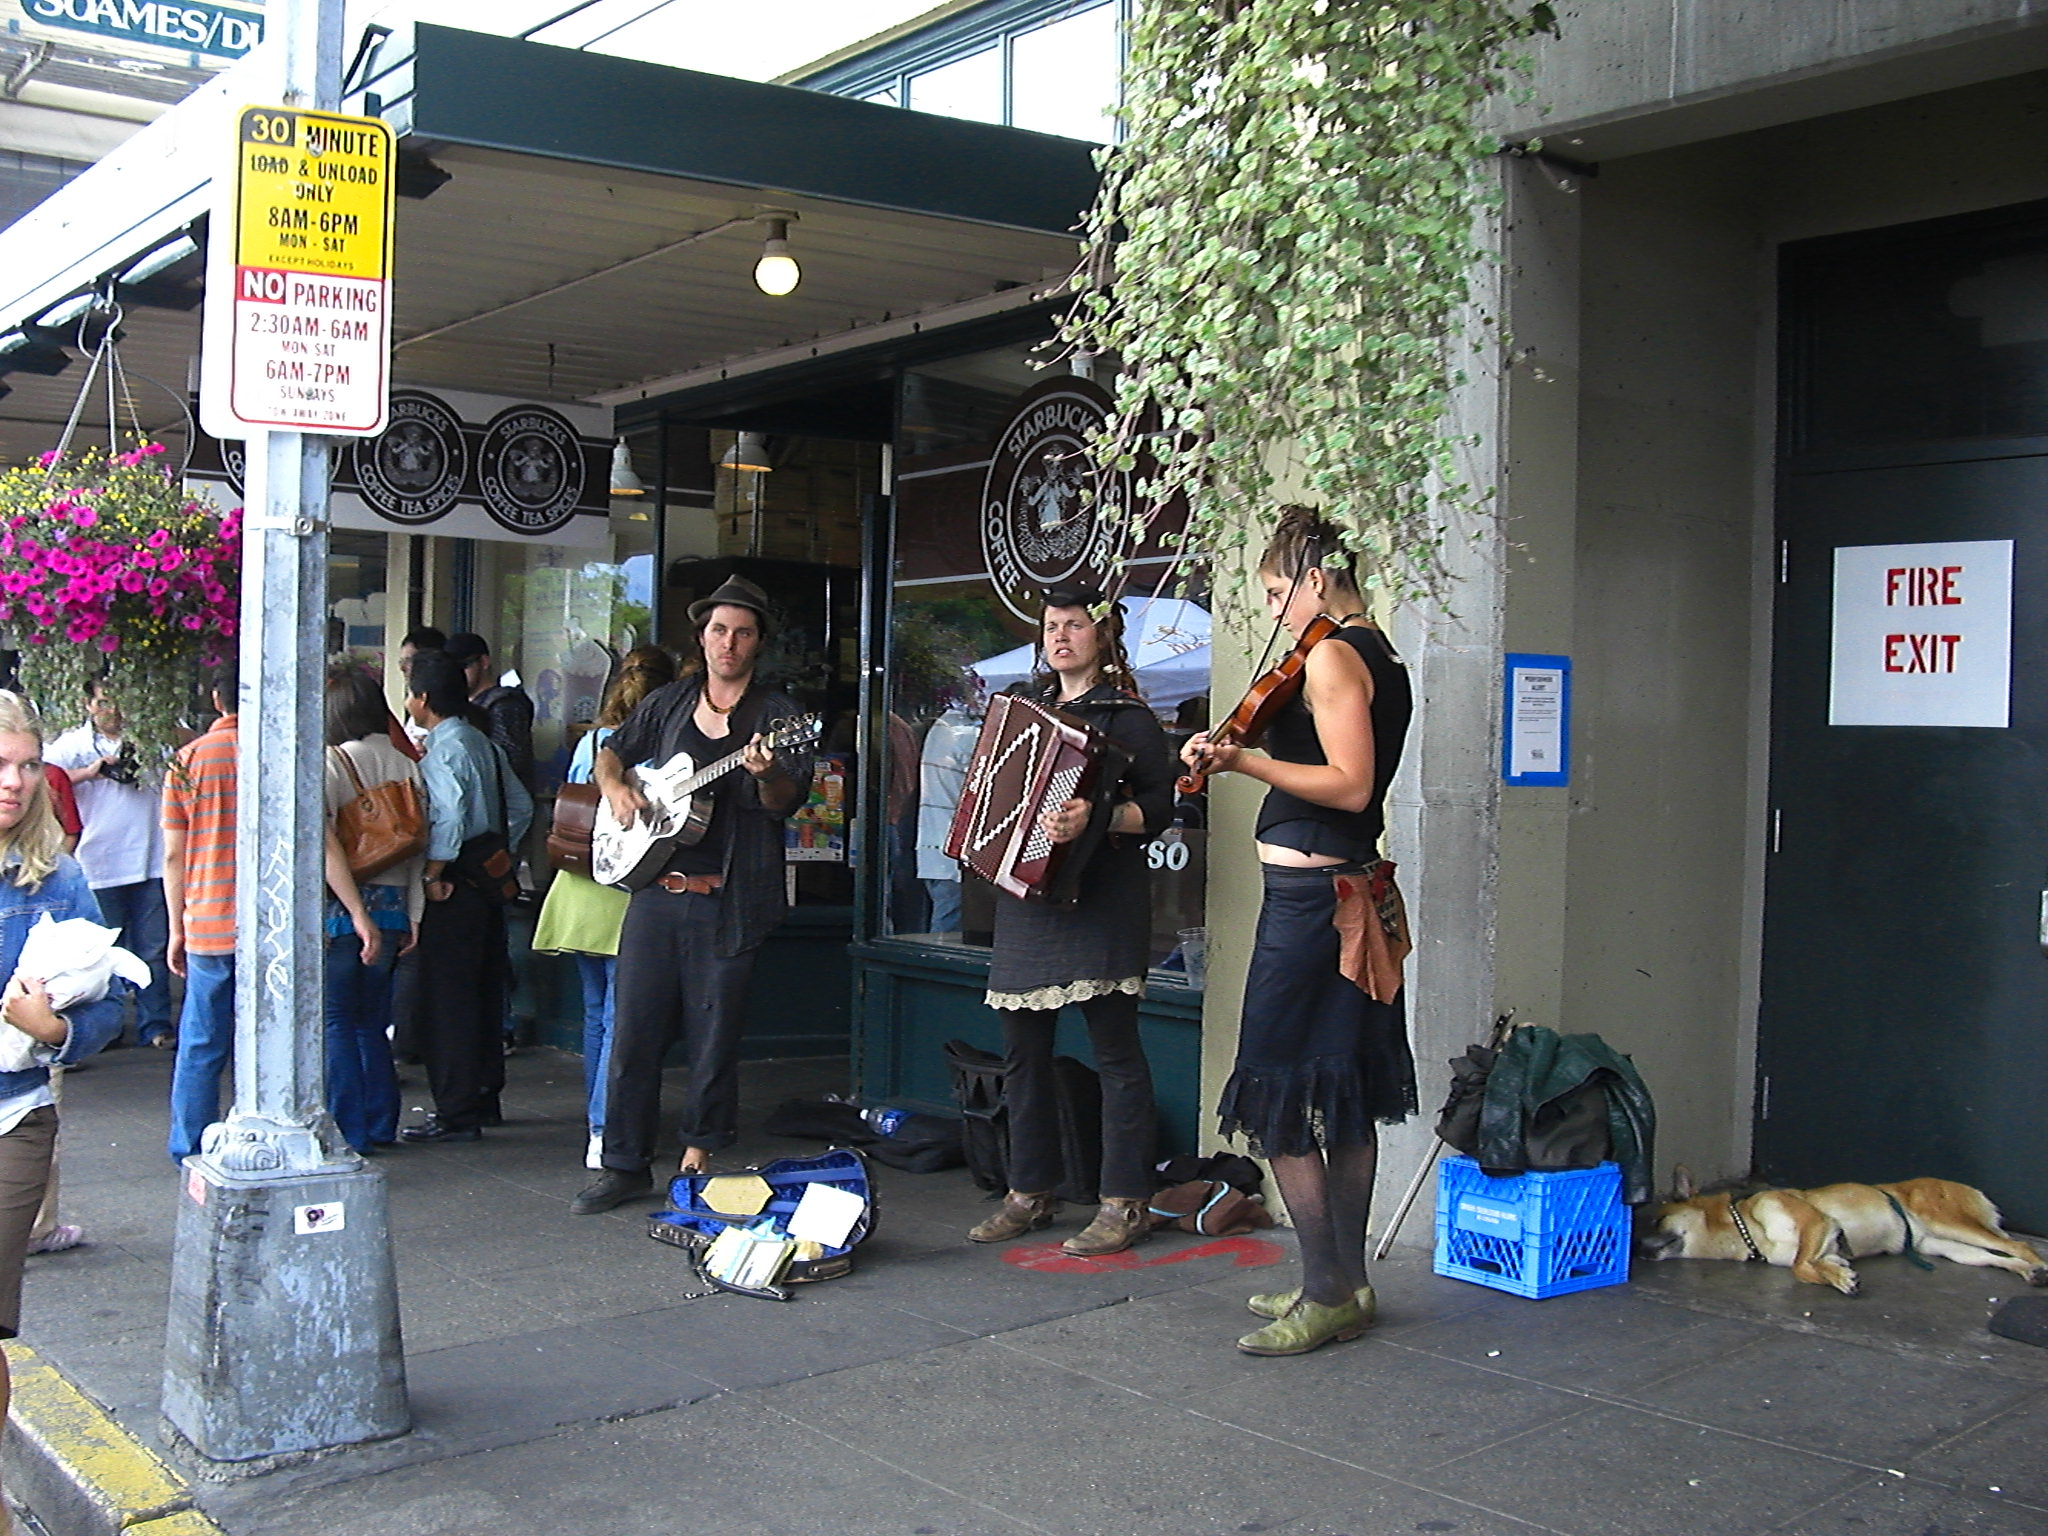 Street performers at the original Starbucks Coffee Pike Place Market Seattle